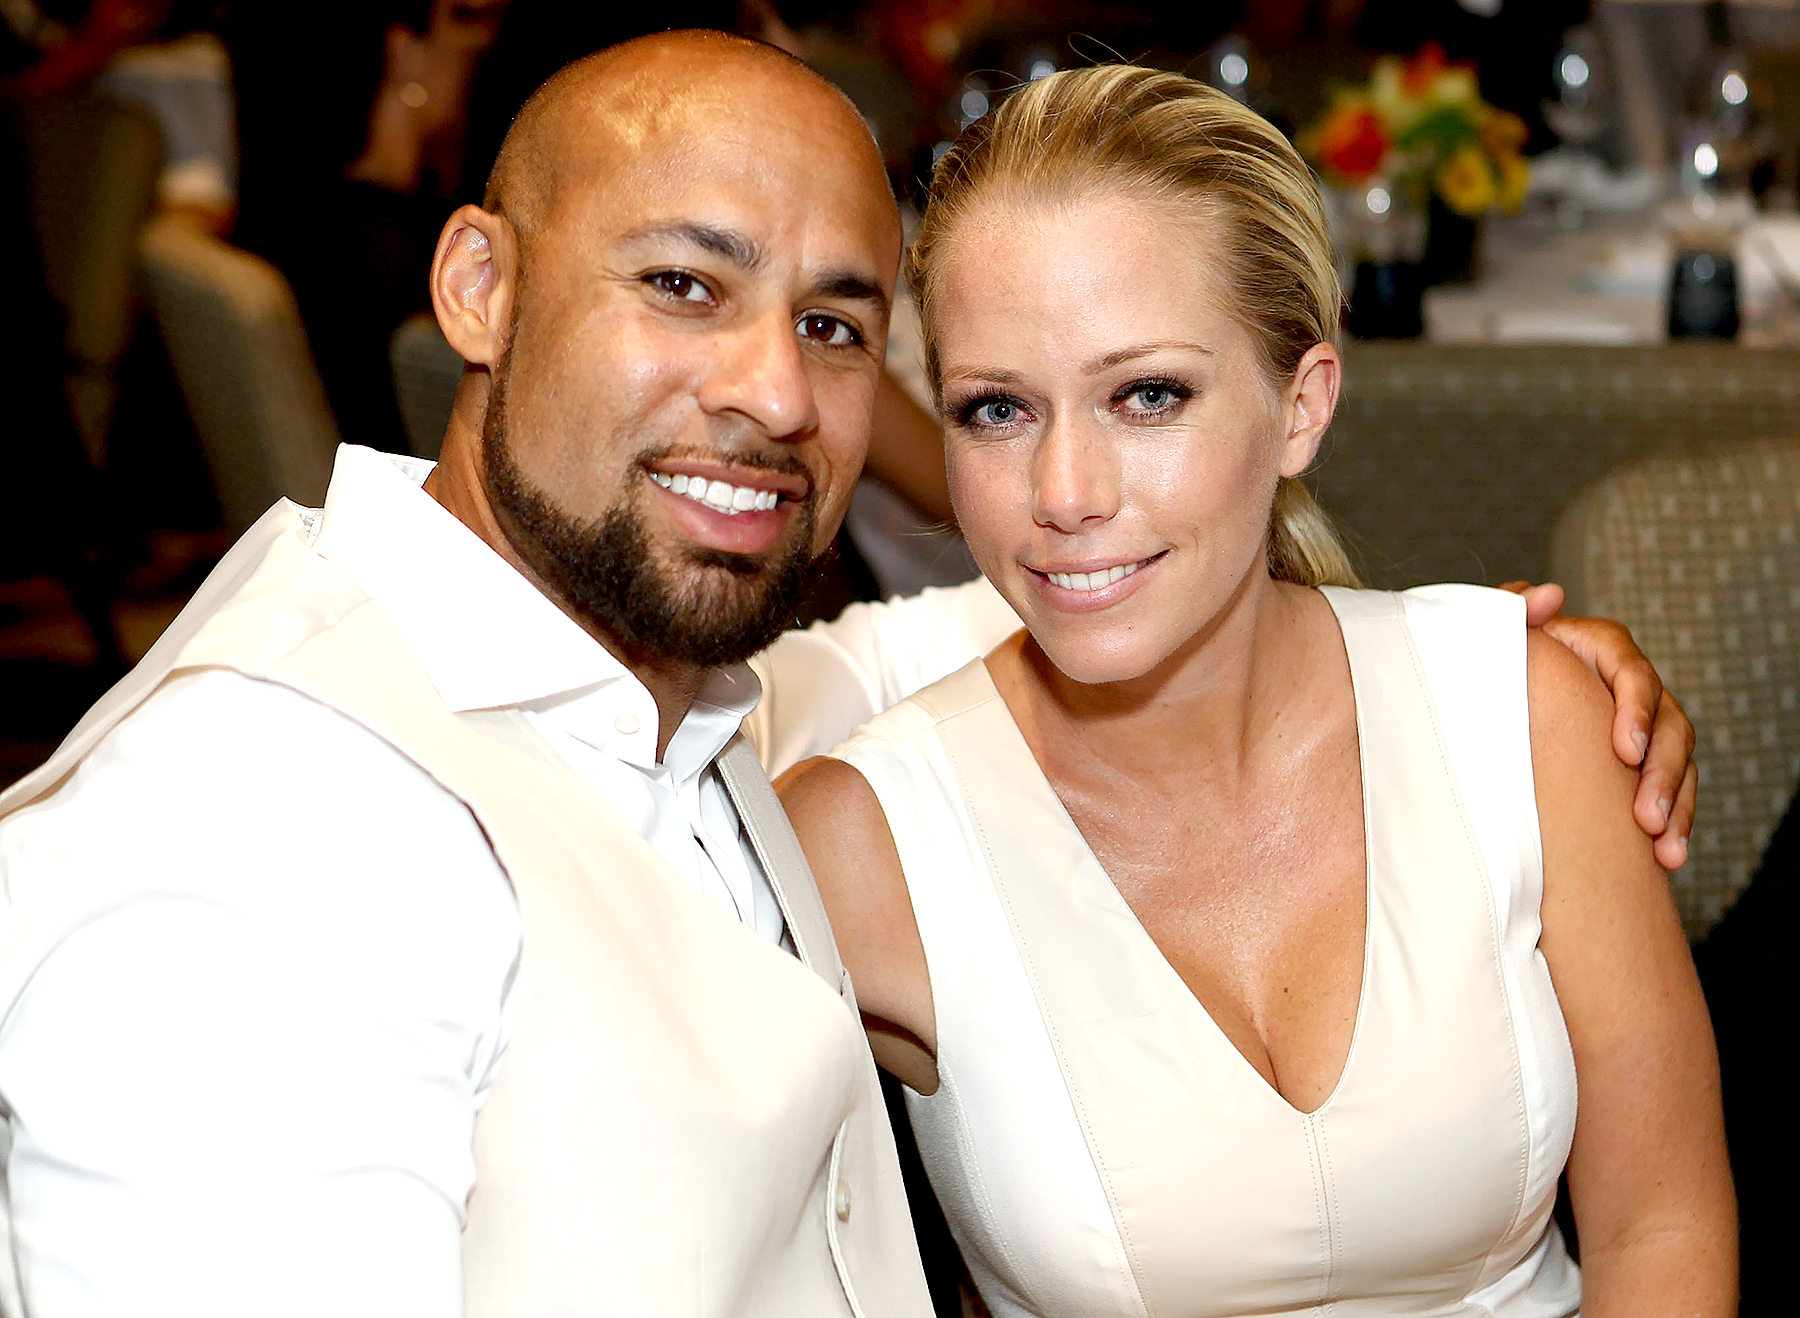 Kendra Wilkinson Confirms Split With Hank Baskett In Emotional Video